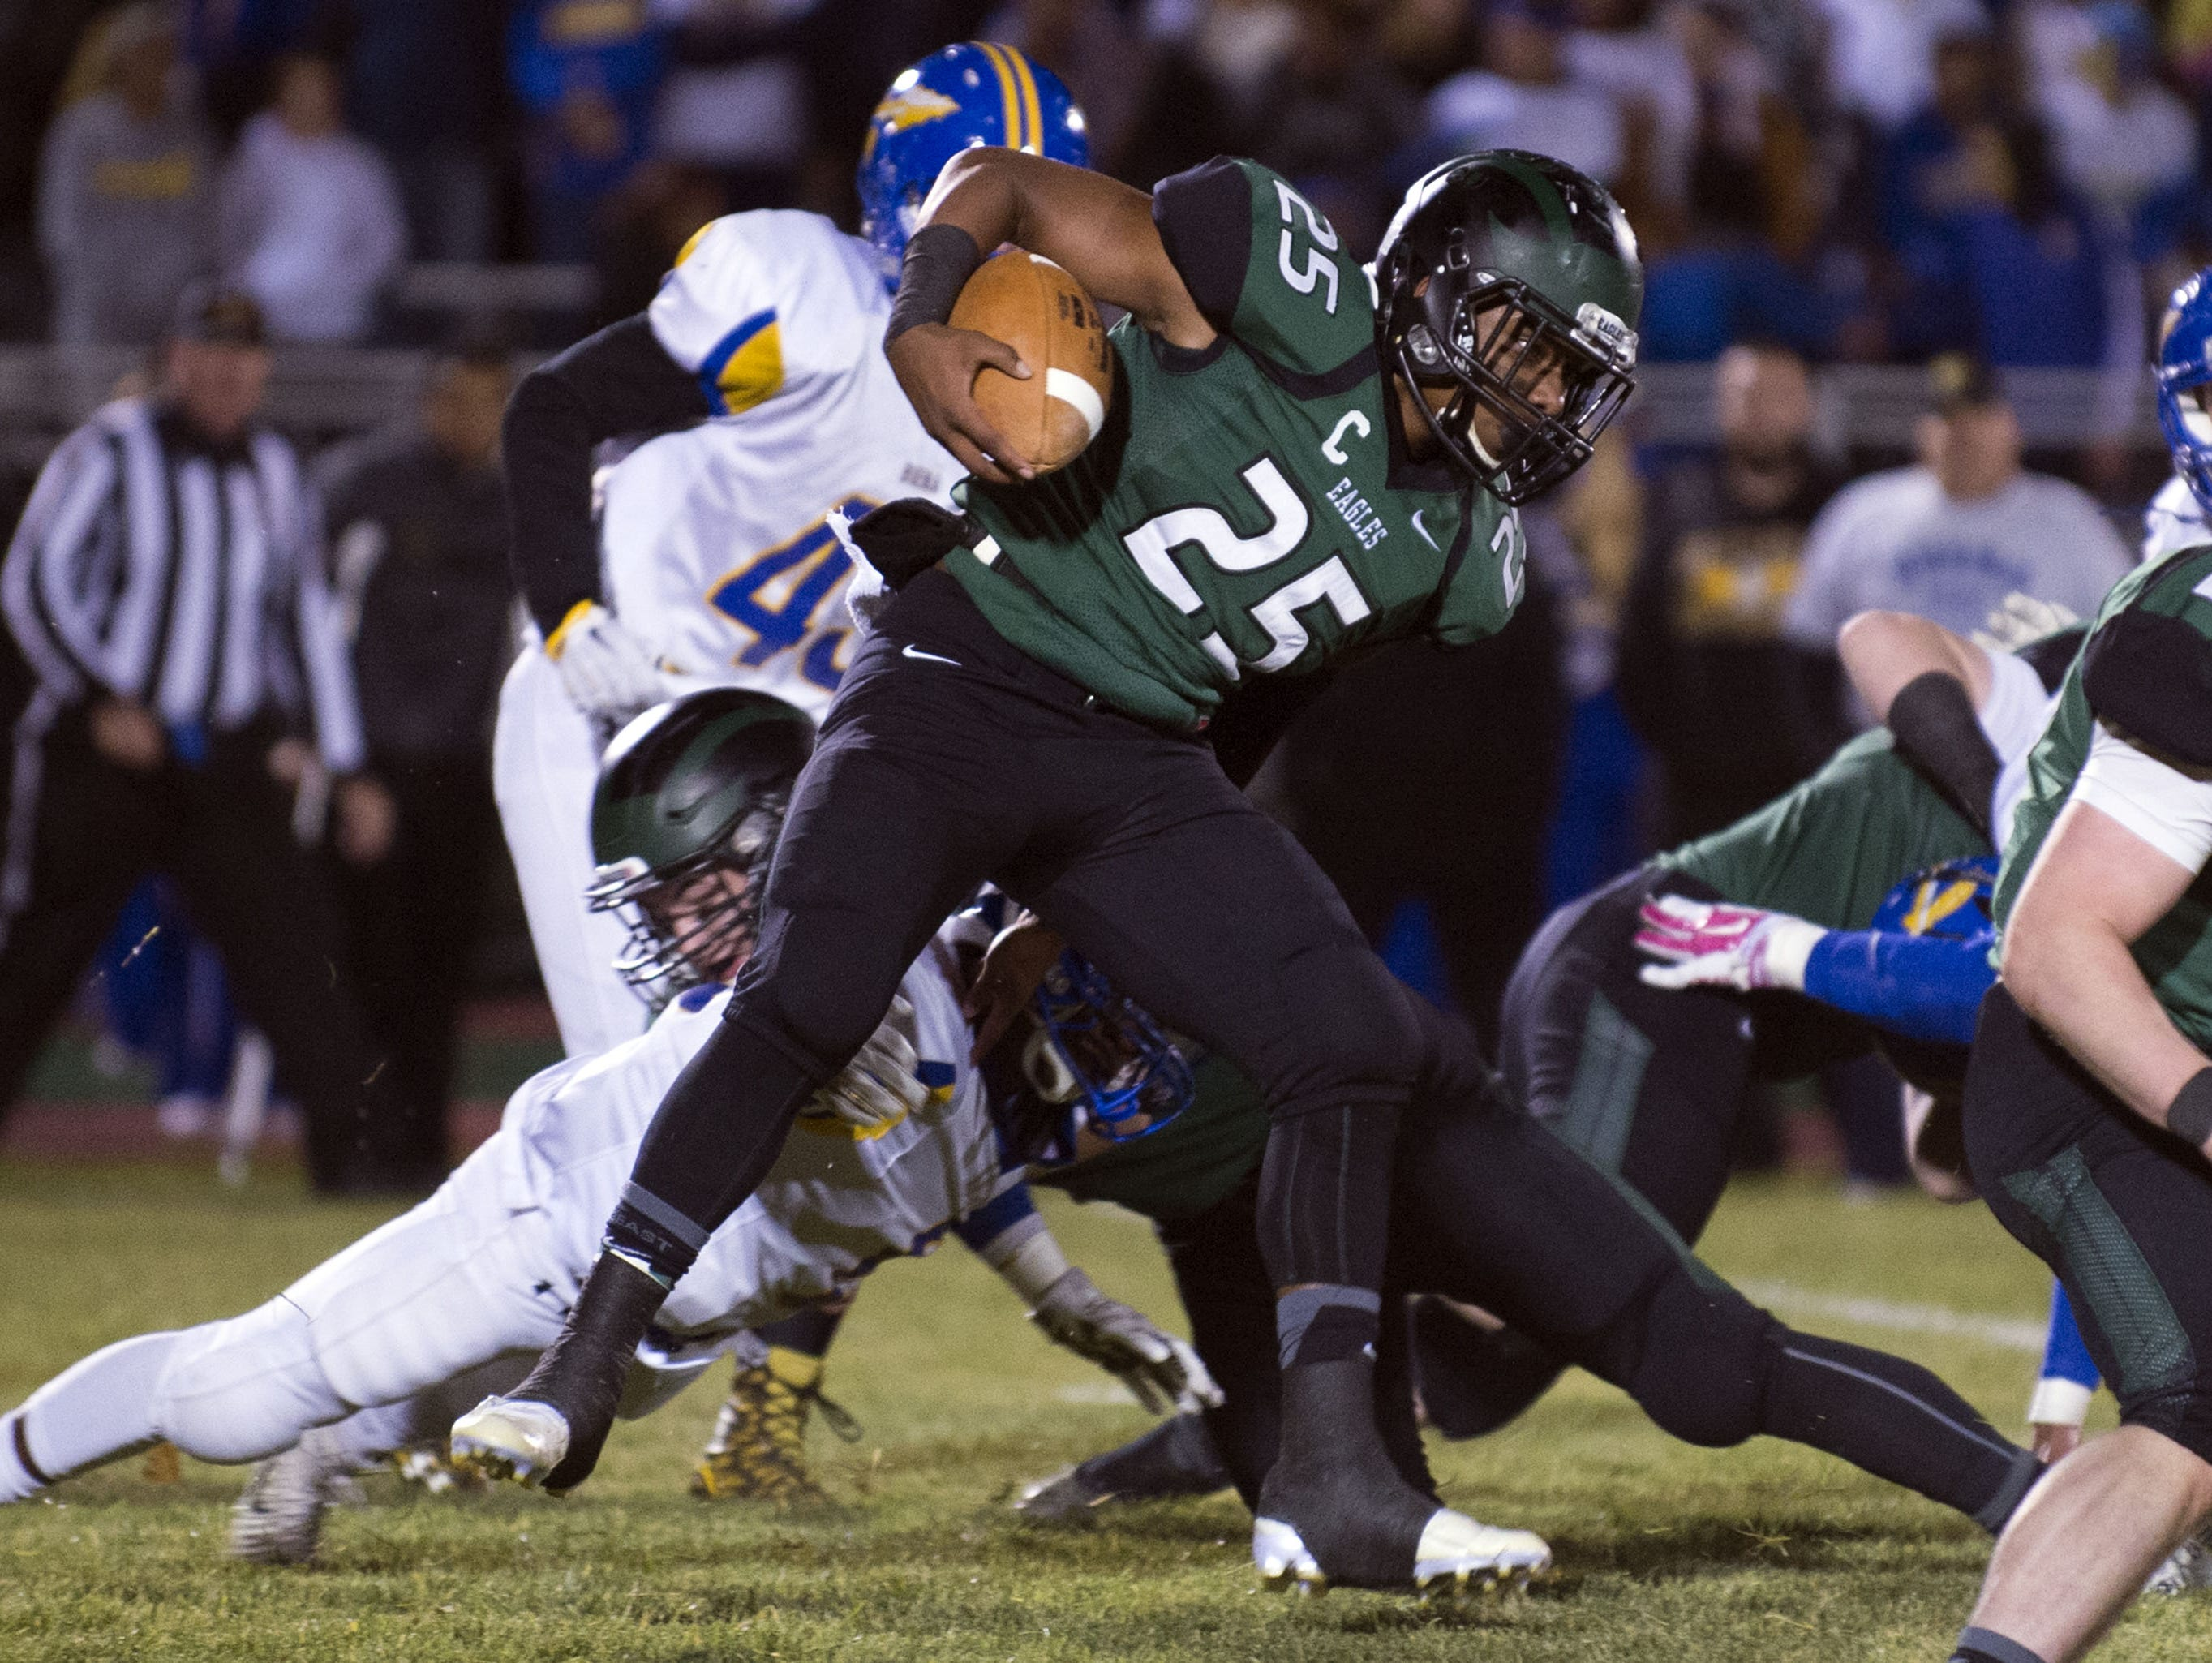 West Deptford's David Hamilton looks for running room during Friday's game against Buena. The Eagles prevailed with a 21-10 win, advancing to the sectional final.